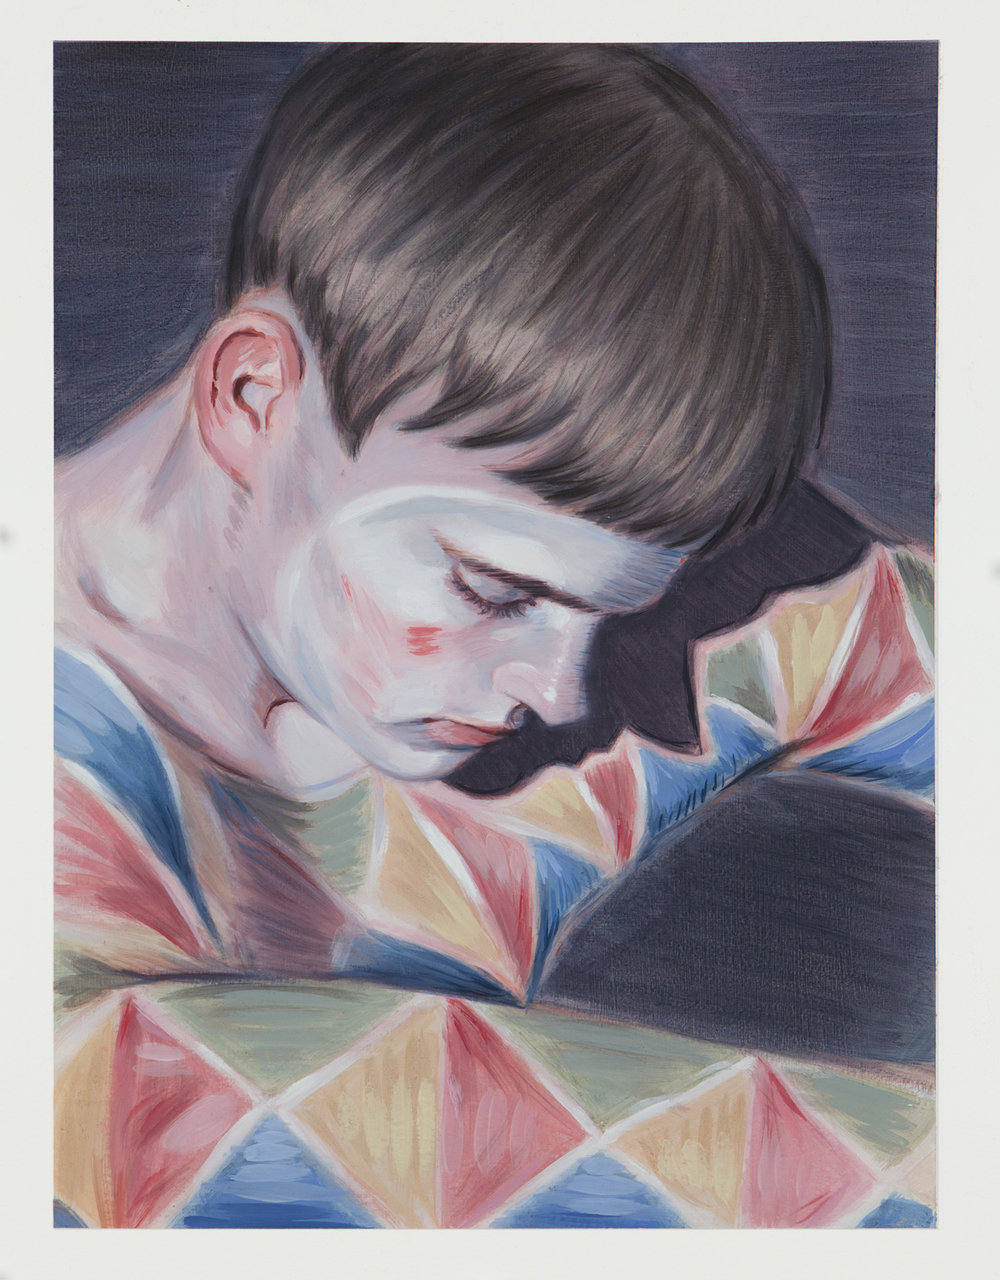 Kris Knight,  Stretching , 2017, oil on prepared cotton paper, 16 x 12 inches